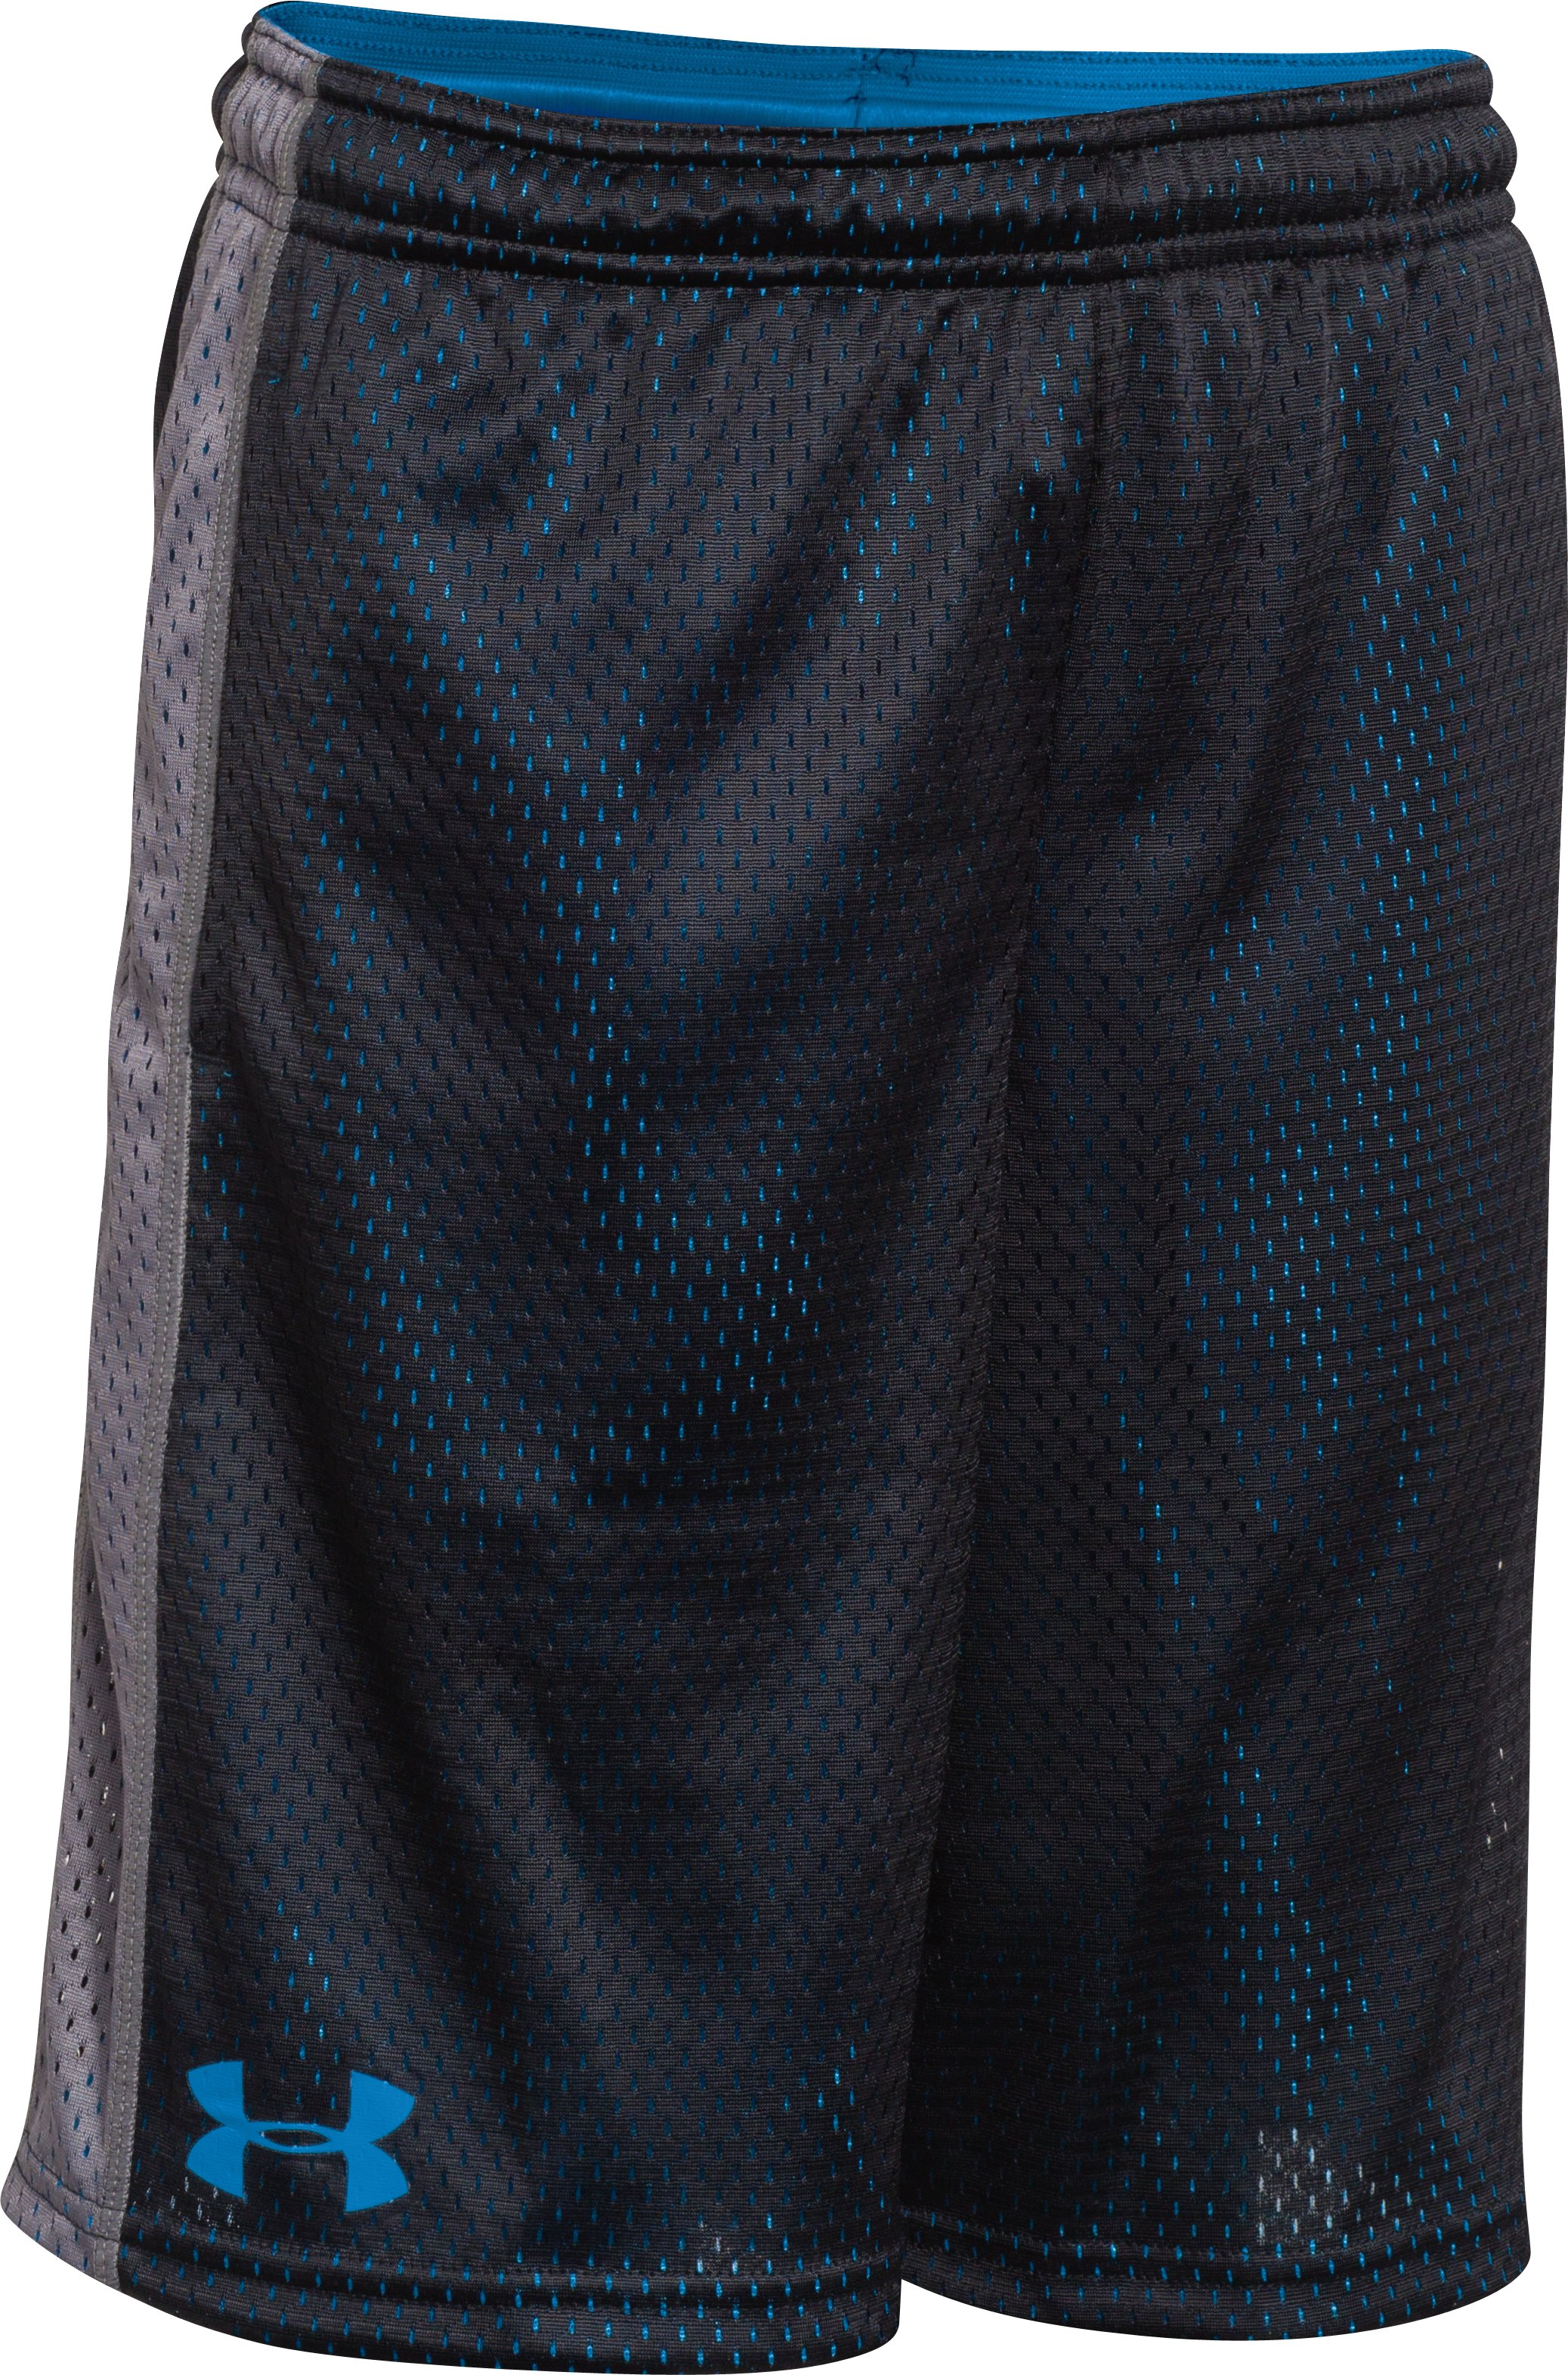 Boys' UA Influencer Shorts, Black , zoomed image